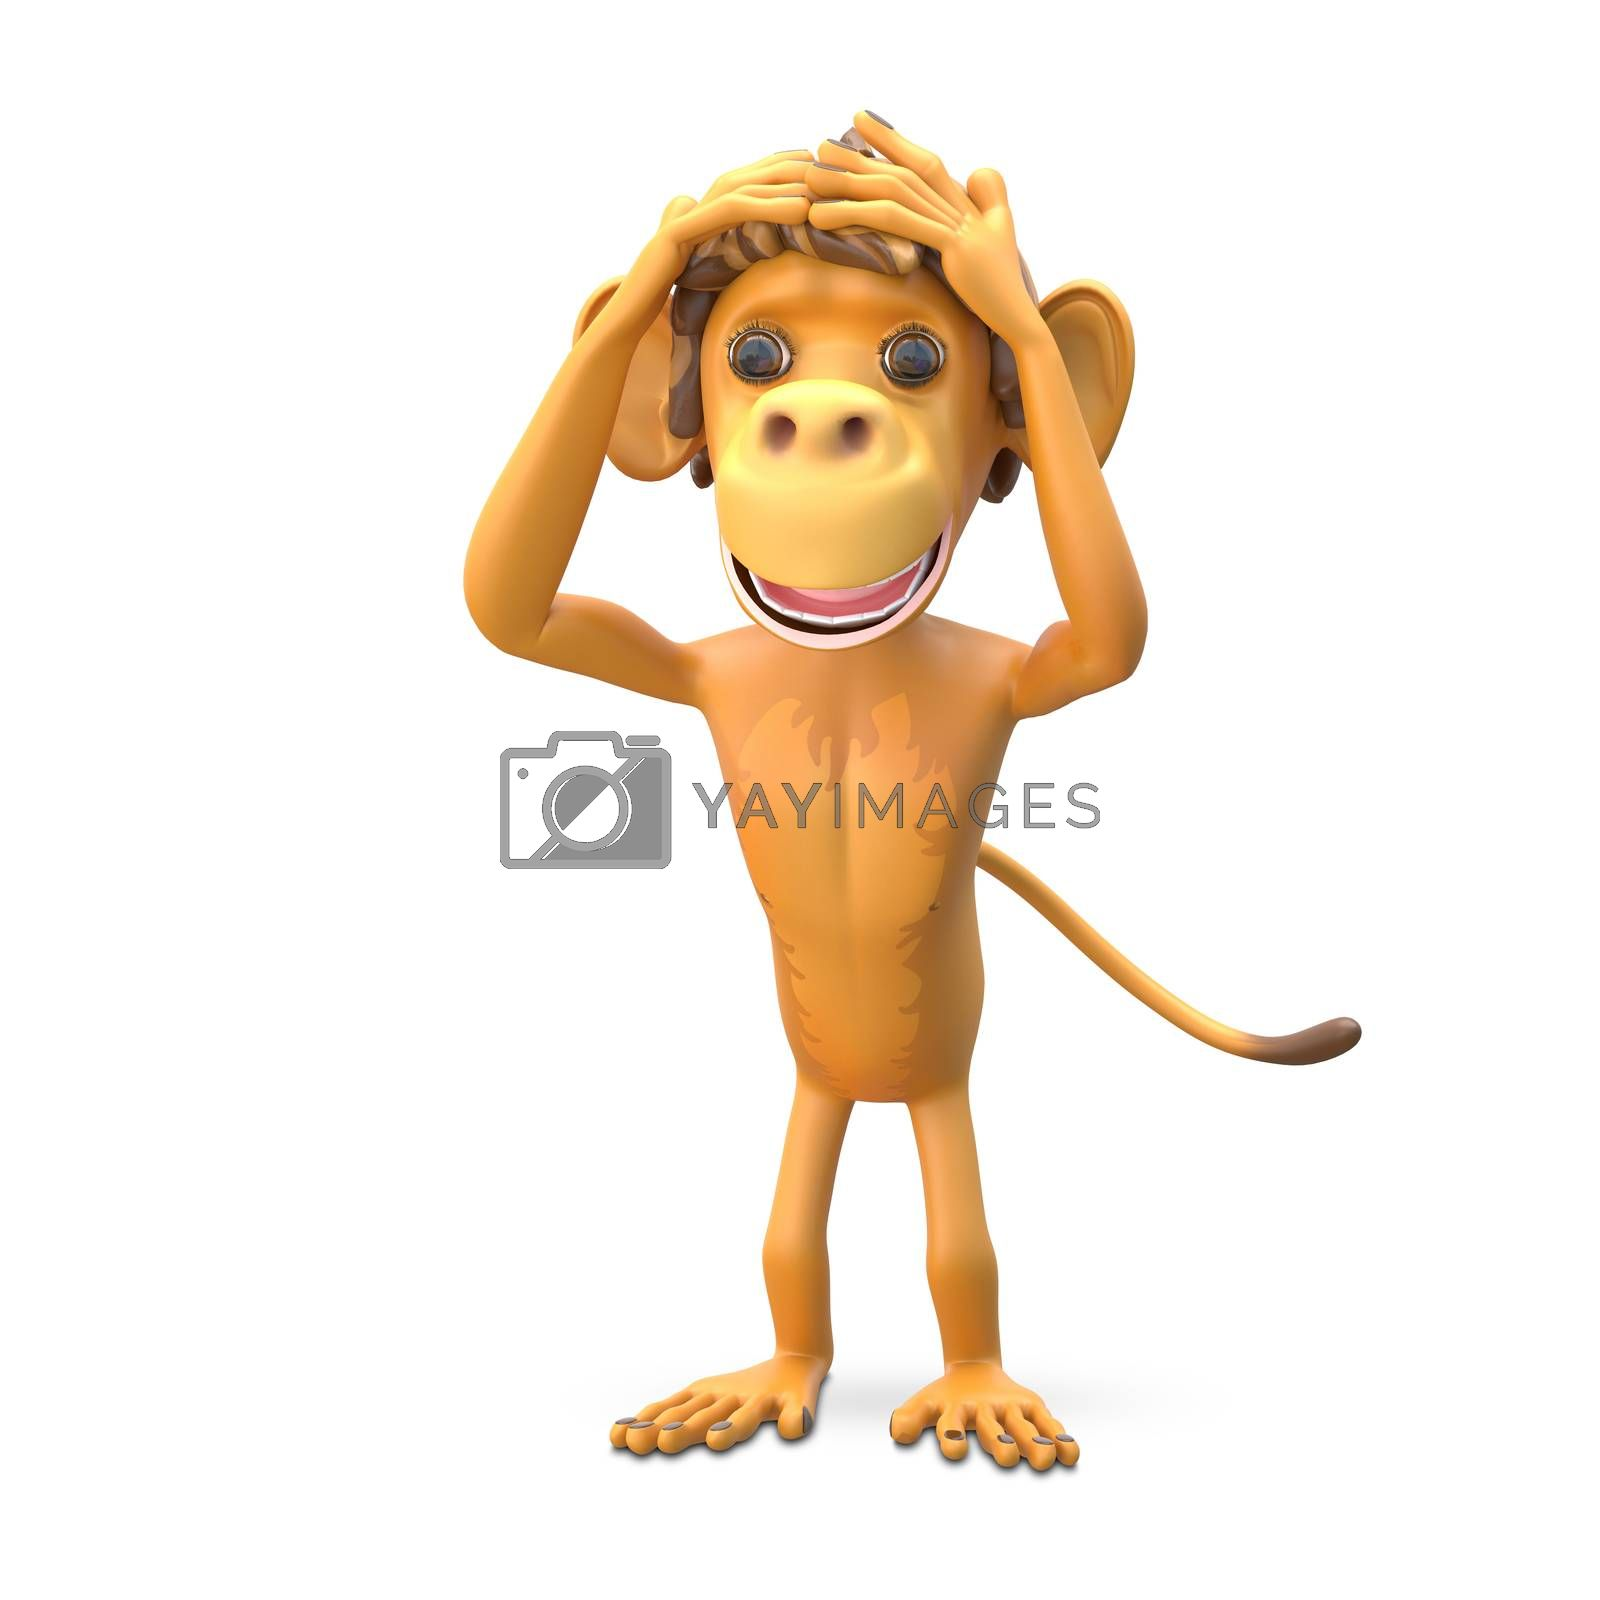 3D Illustration of a Scared Monkey on White Background